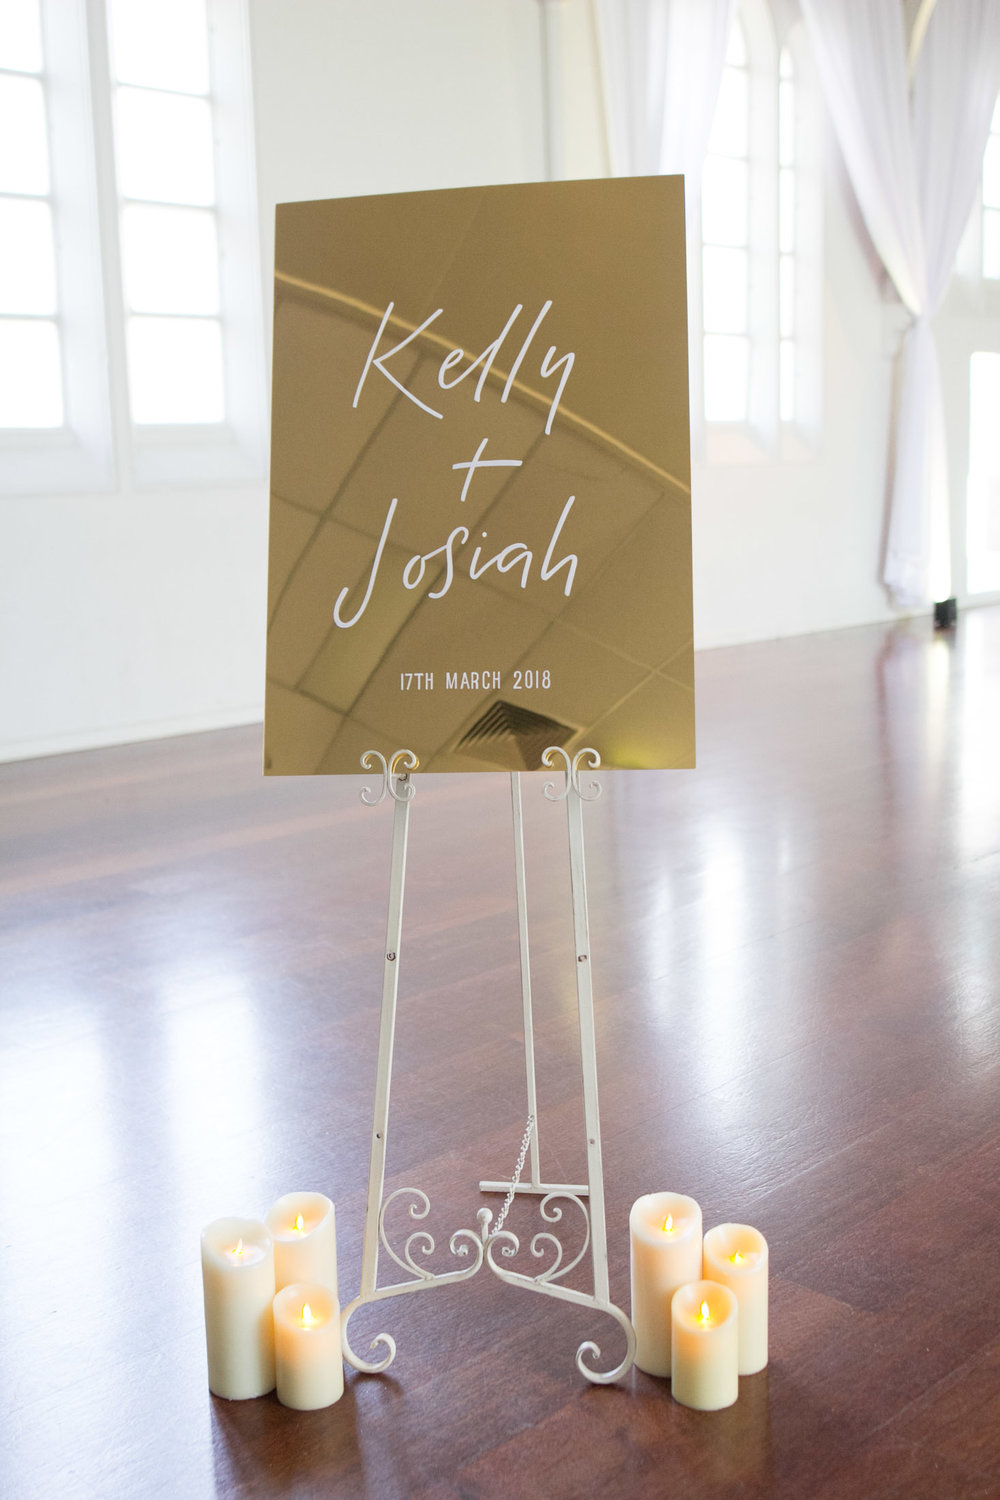 avideas | kelly and josiah | faithimhoffphotography | weddings at the church